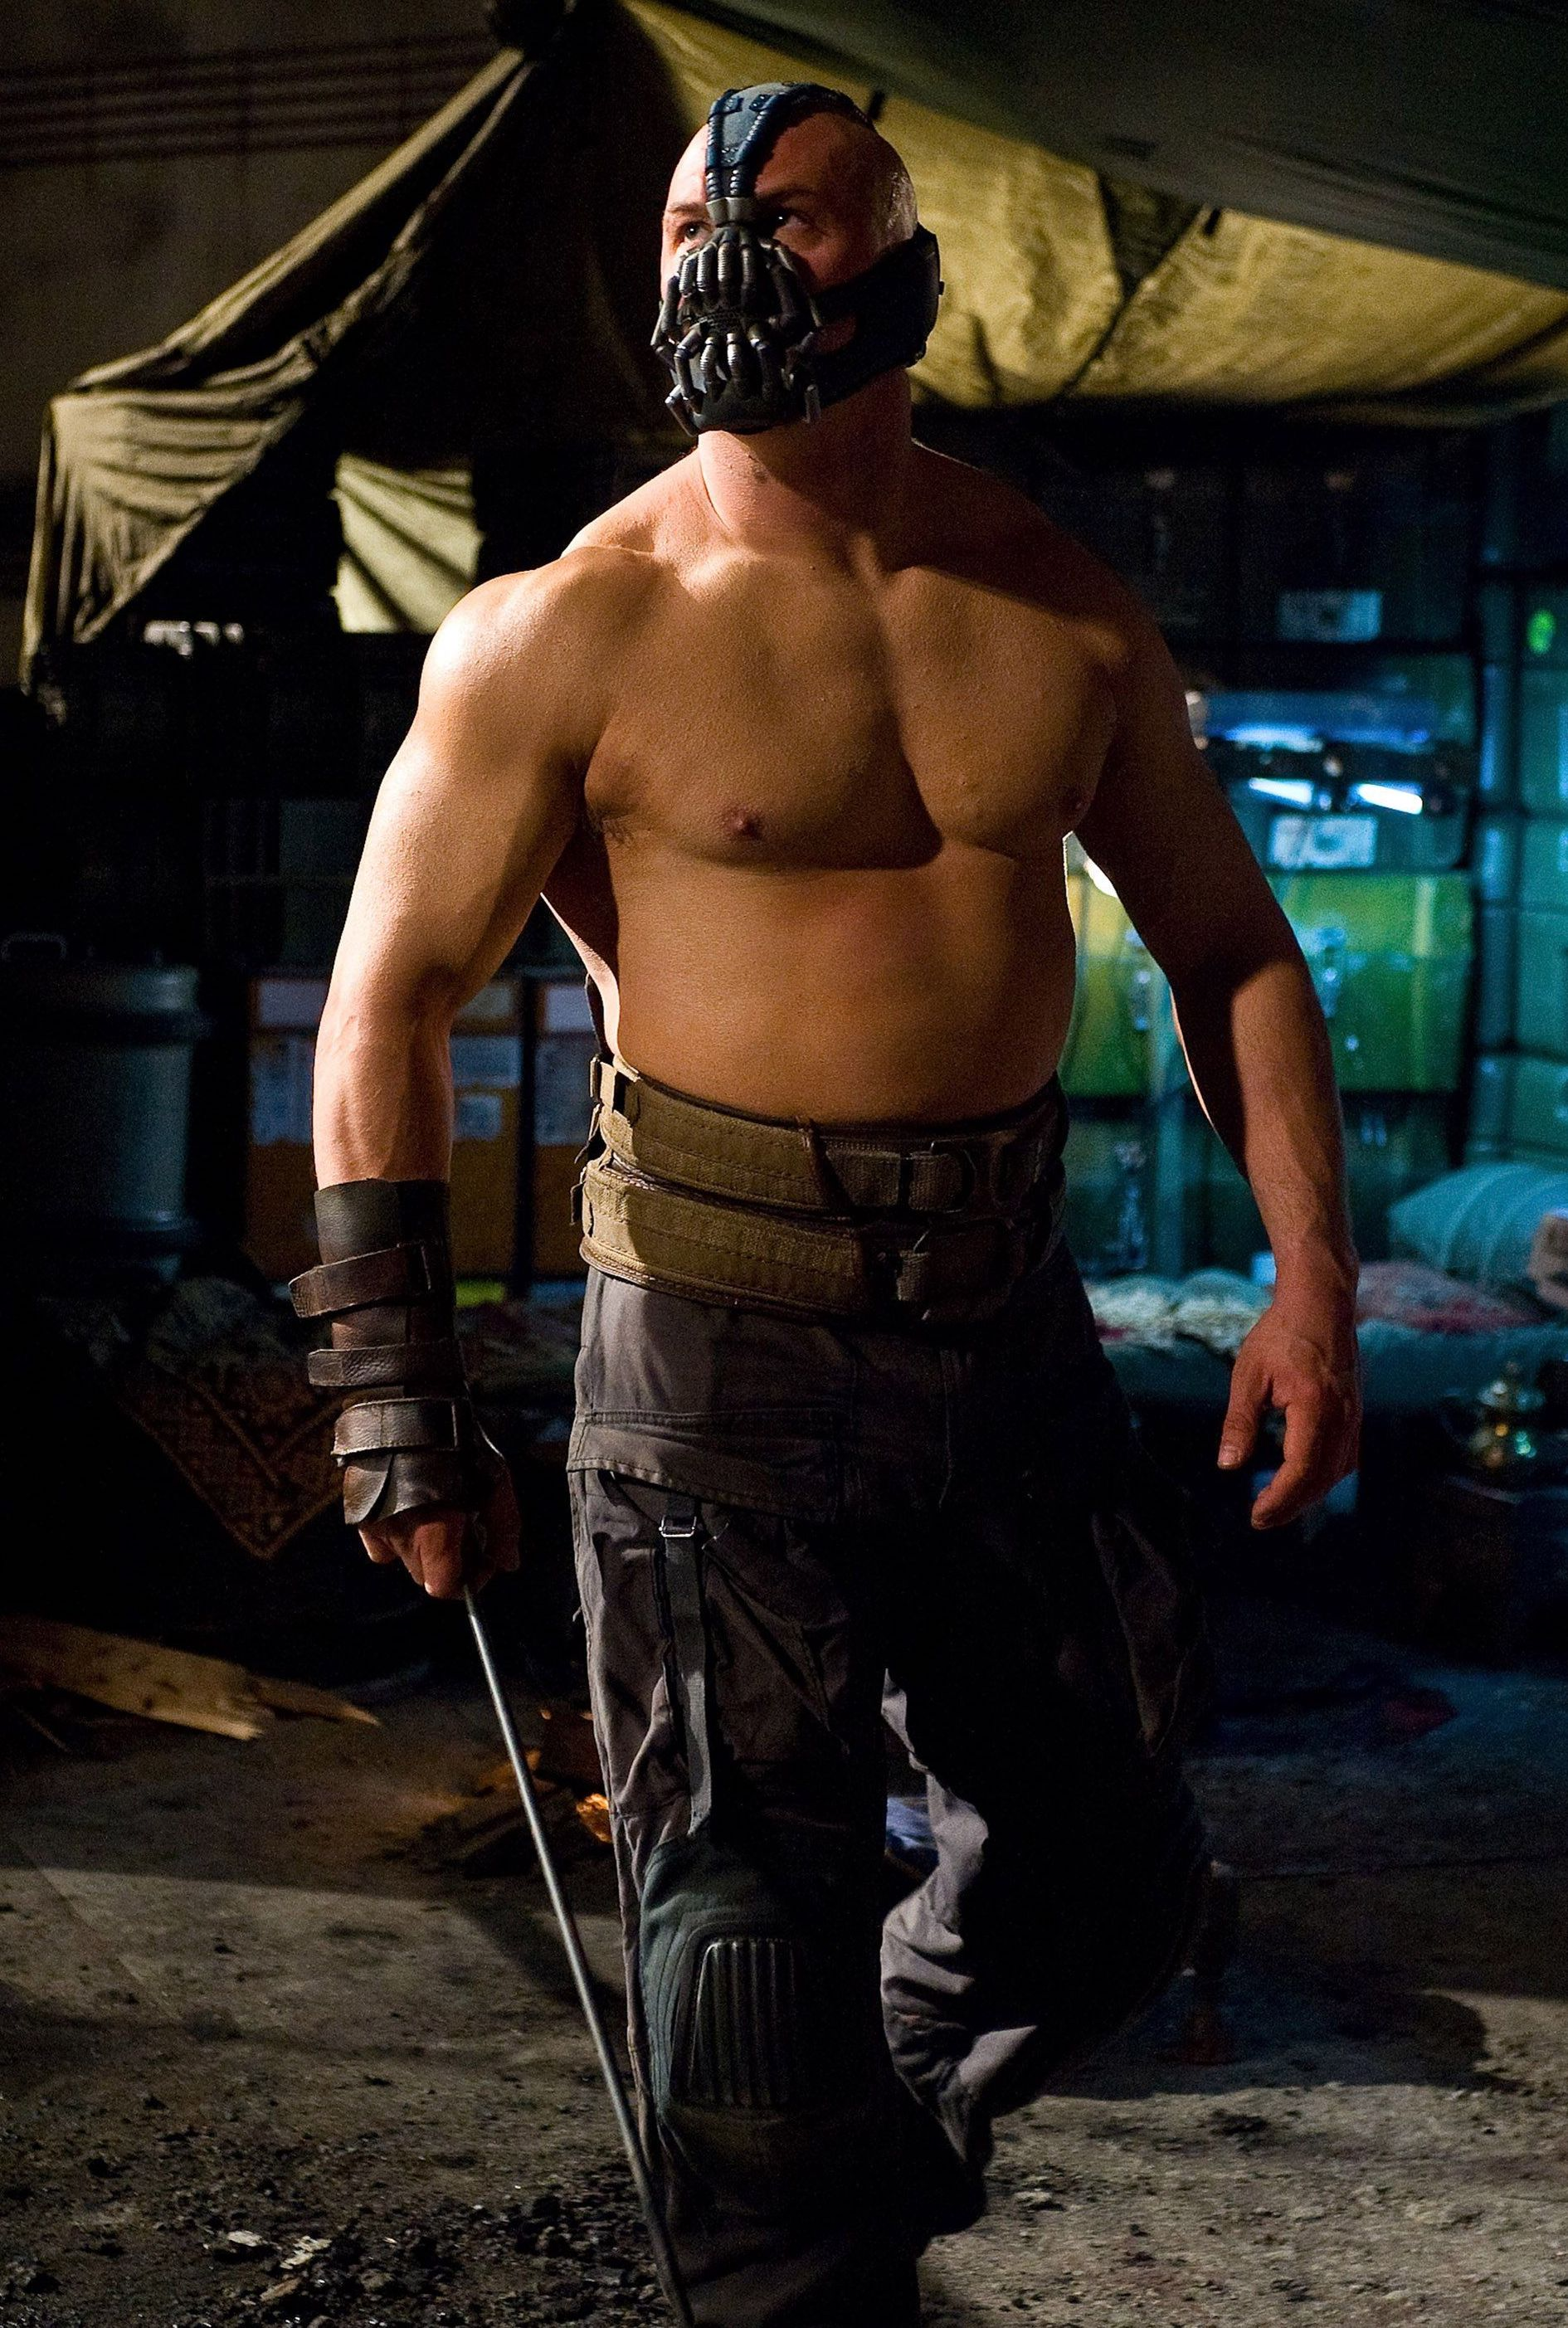 bane pod image 01 25 Things You Didn't Know About The Dark Knight Rises